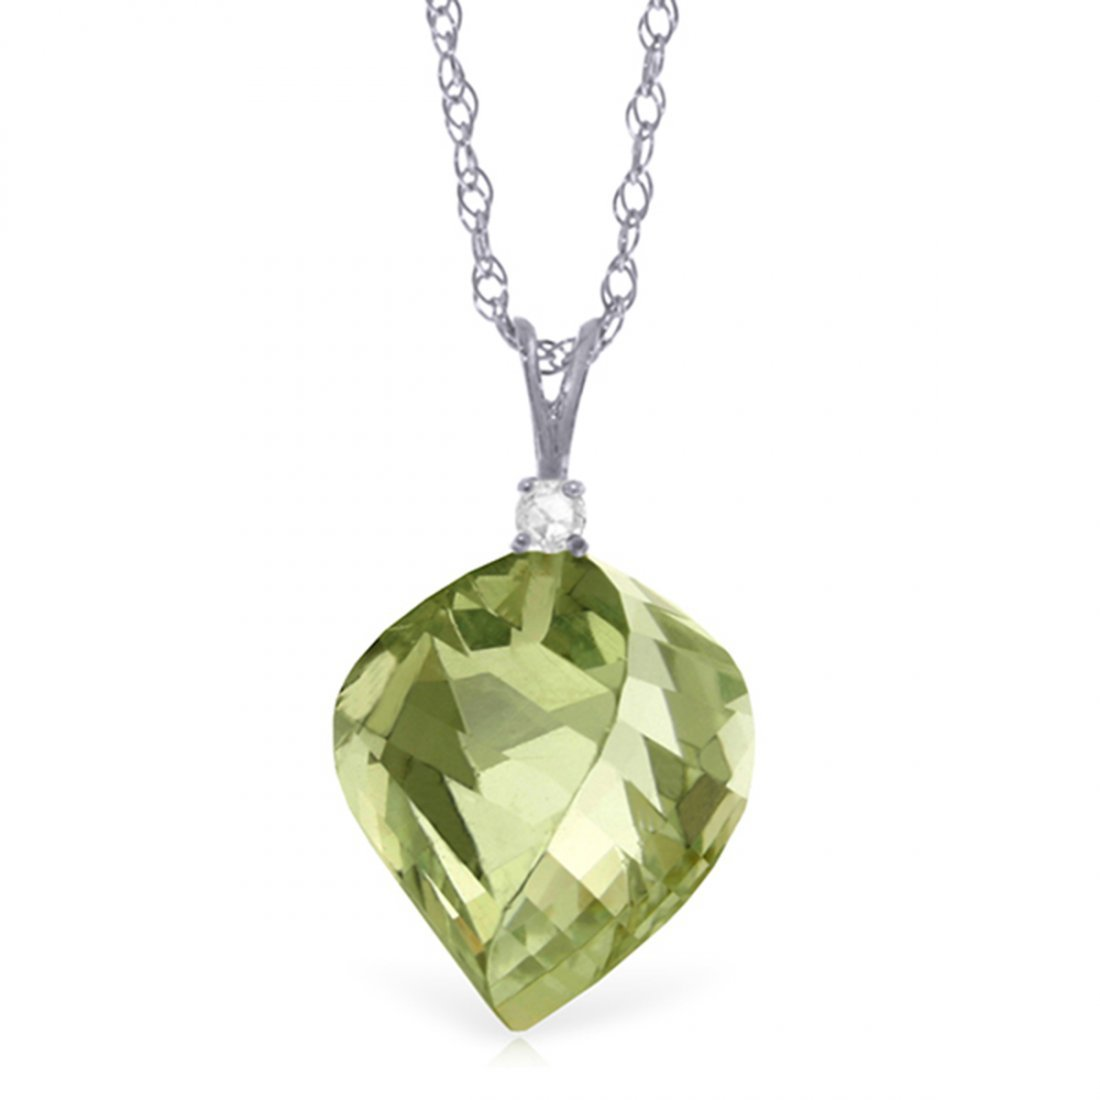 14k Gold 13.0ct Green Amethyst with Diamond Necklace